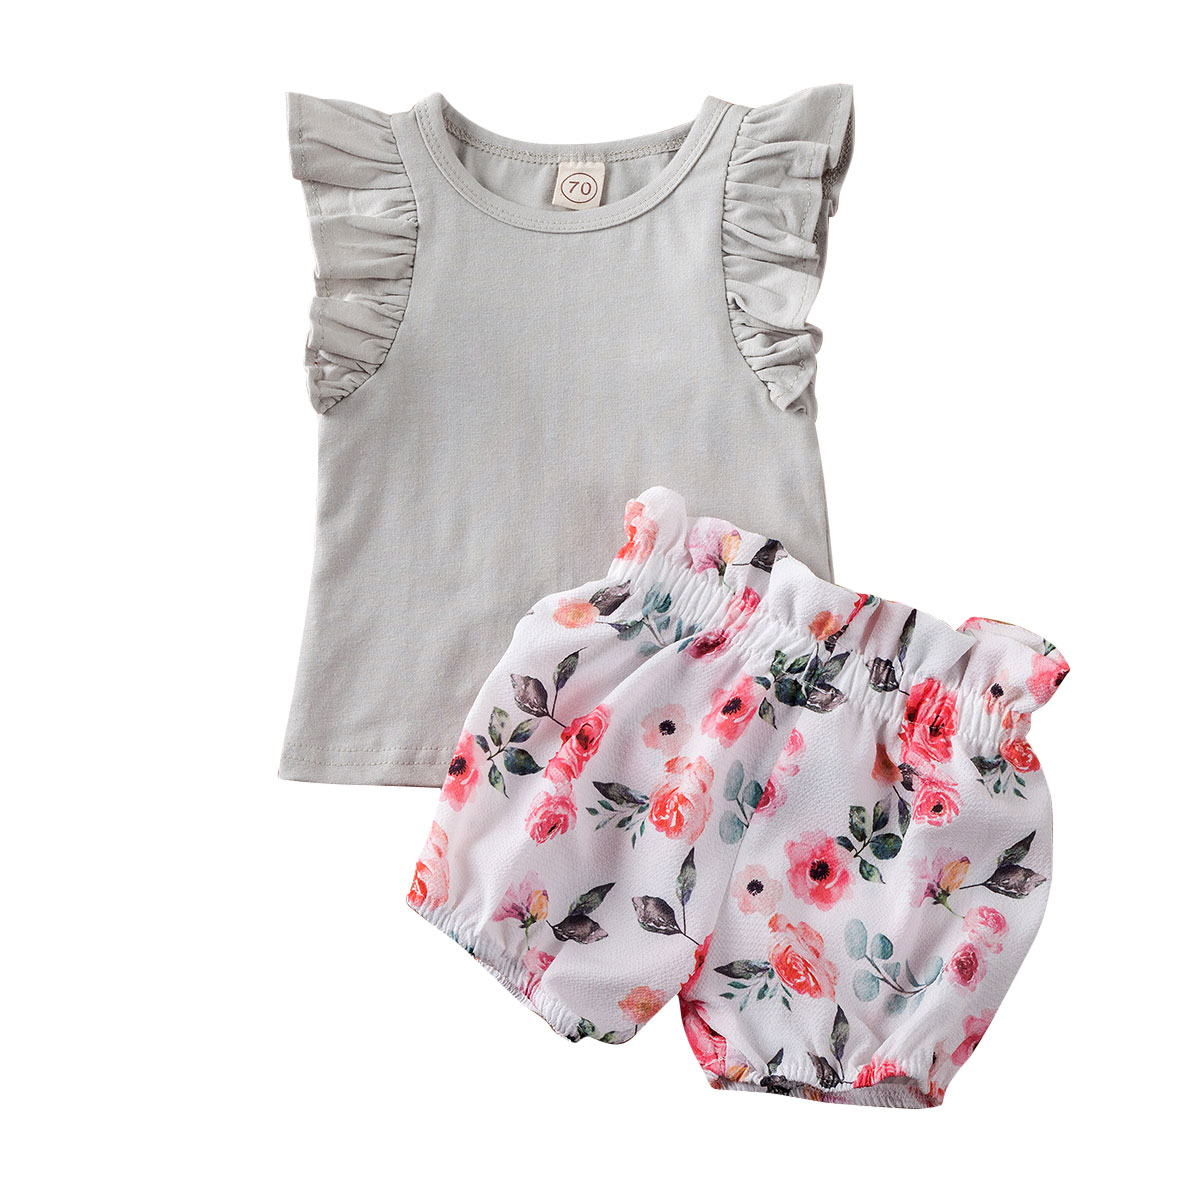 UK Toddler Baby Girls Clothes Sleeveless Tops+Stripe Pants Trousers Outfits Set